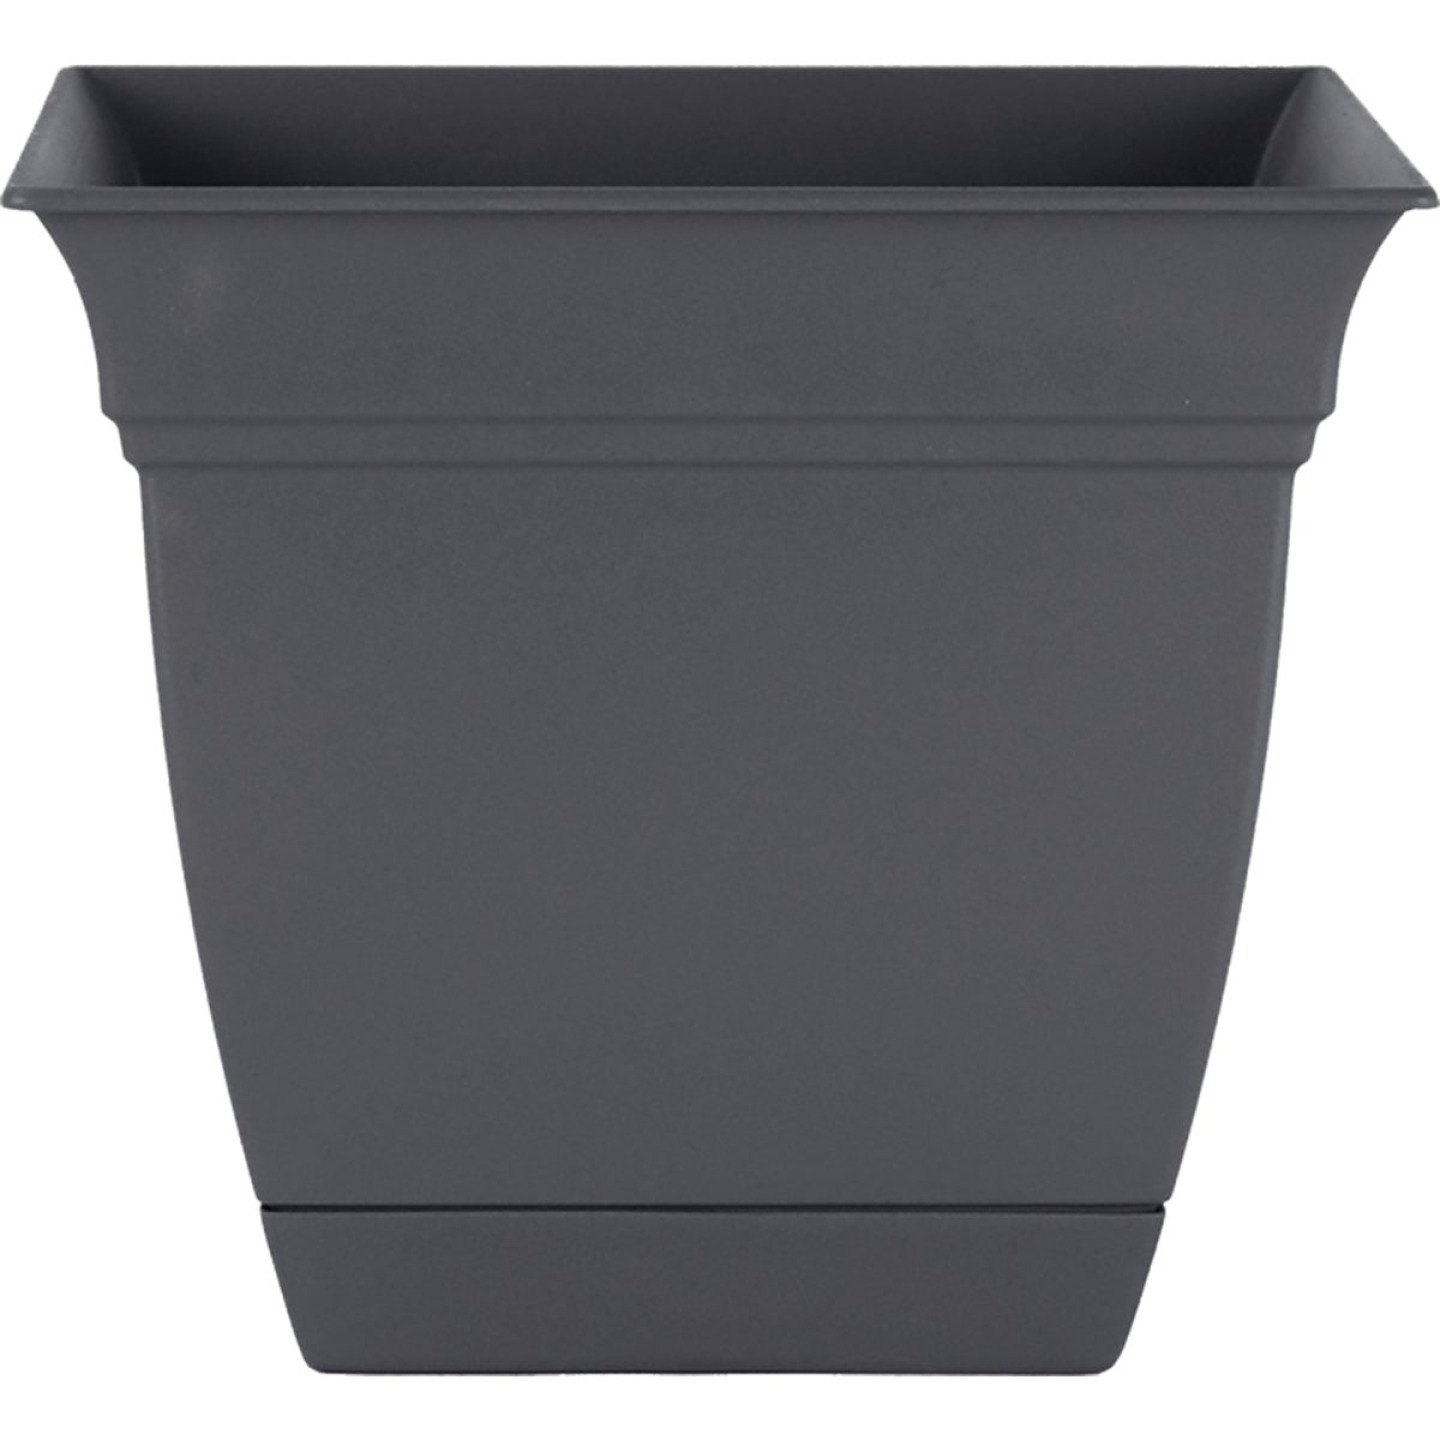 HC Companies Eclipse 10 In. x 10 In. x 8.75 In. Resin Warm Gray Planter Image 1